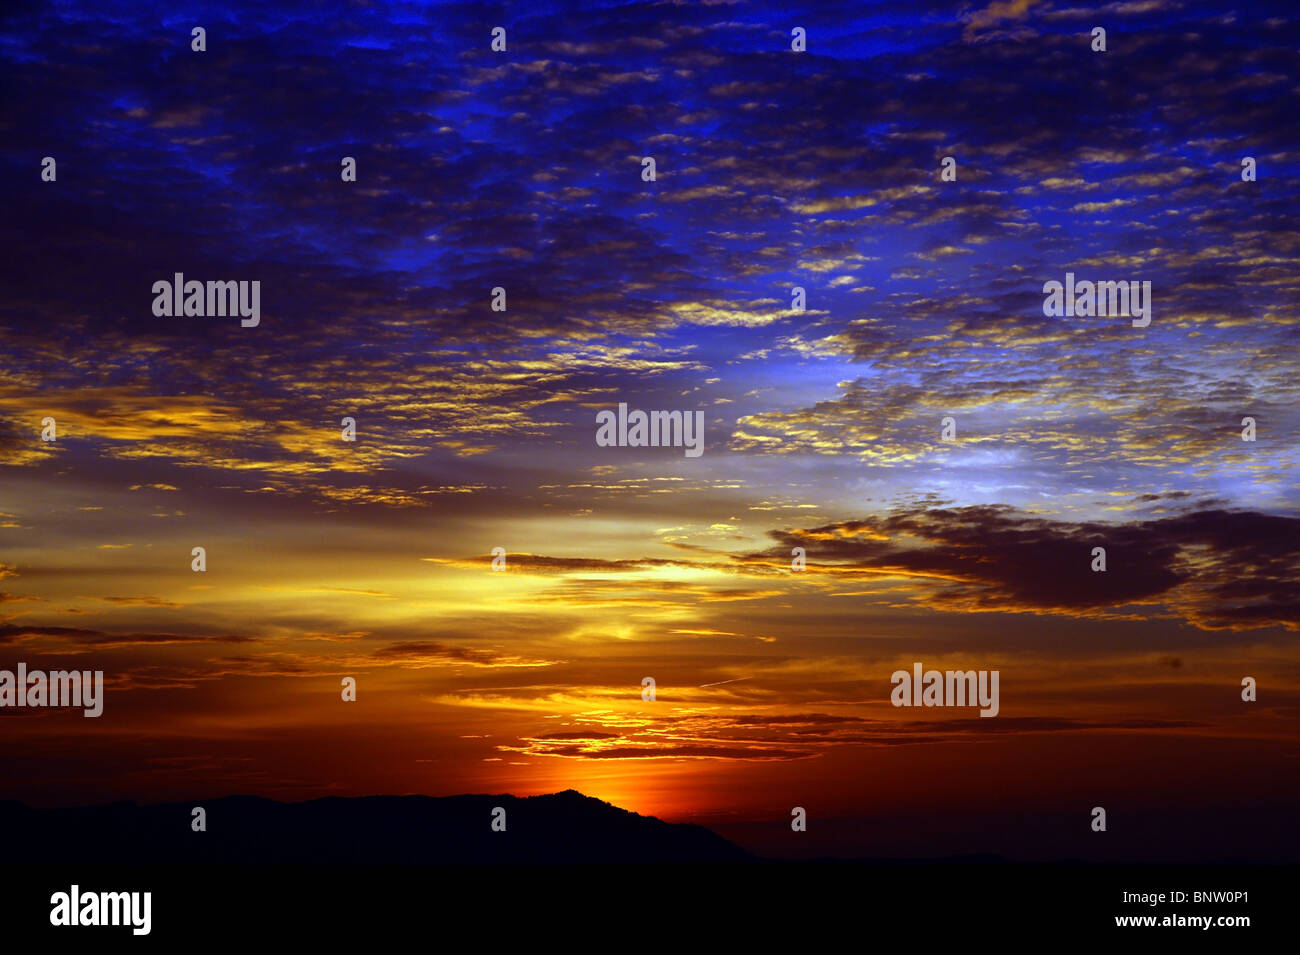 Sunset with a kind on mountains Matang from height of the bird's flight. Malaysia. Borneo. Kuching. - Stock Image